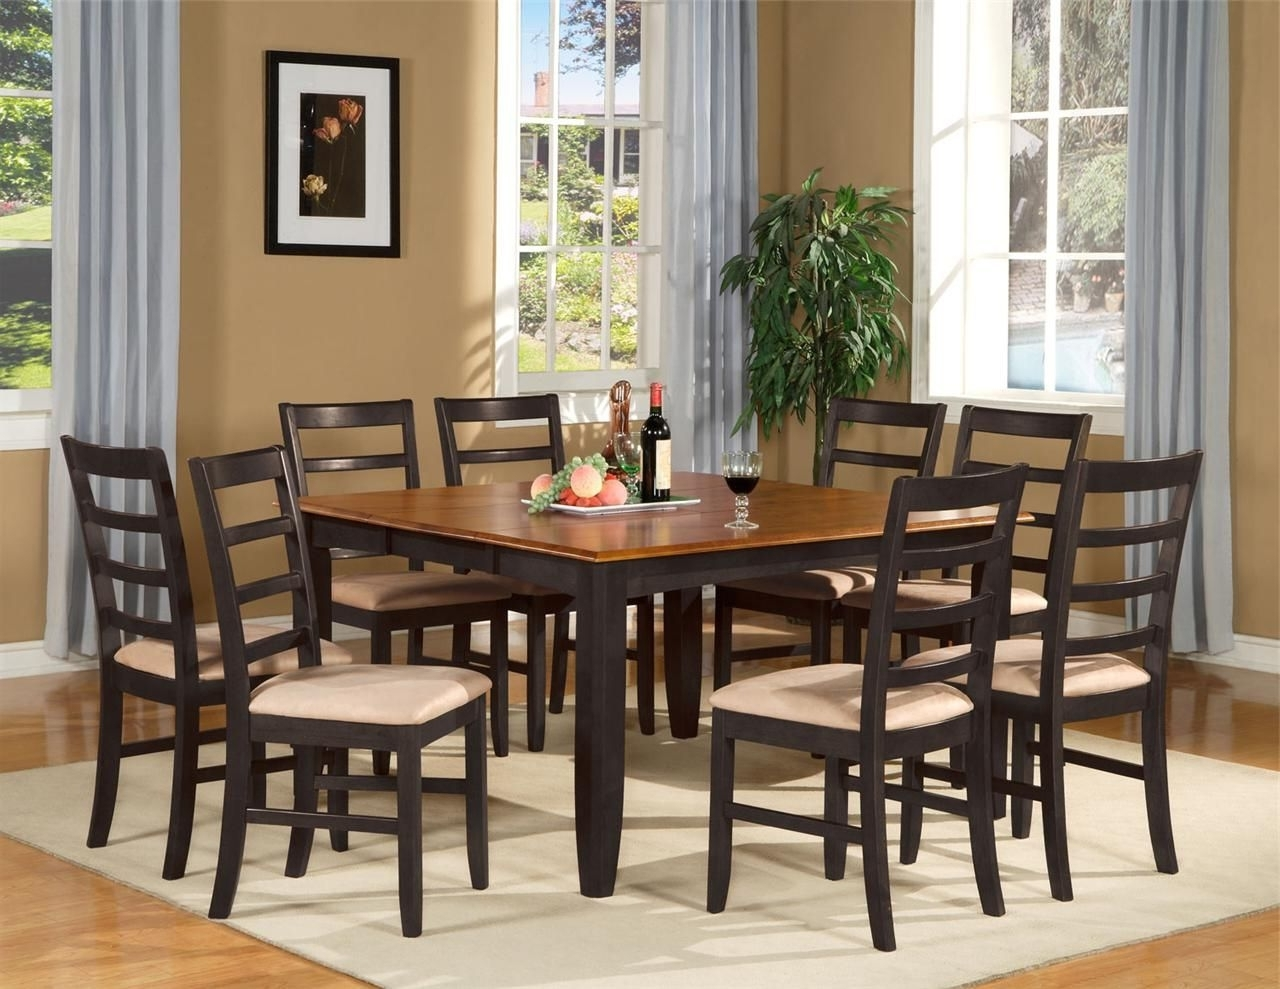 Current Trendy Dining Table Designs For A Stylish Dining Room – Home Decor Ideas Pertaining To Dining Tables For  (View 11 of 25)